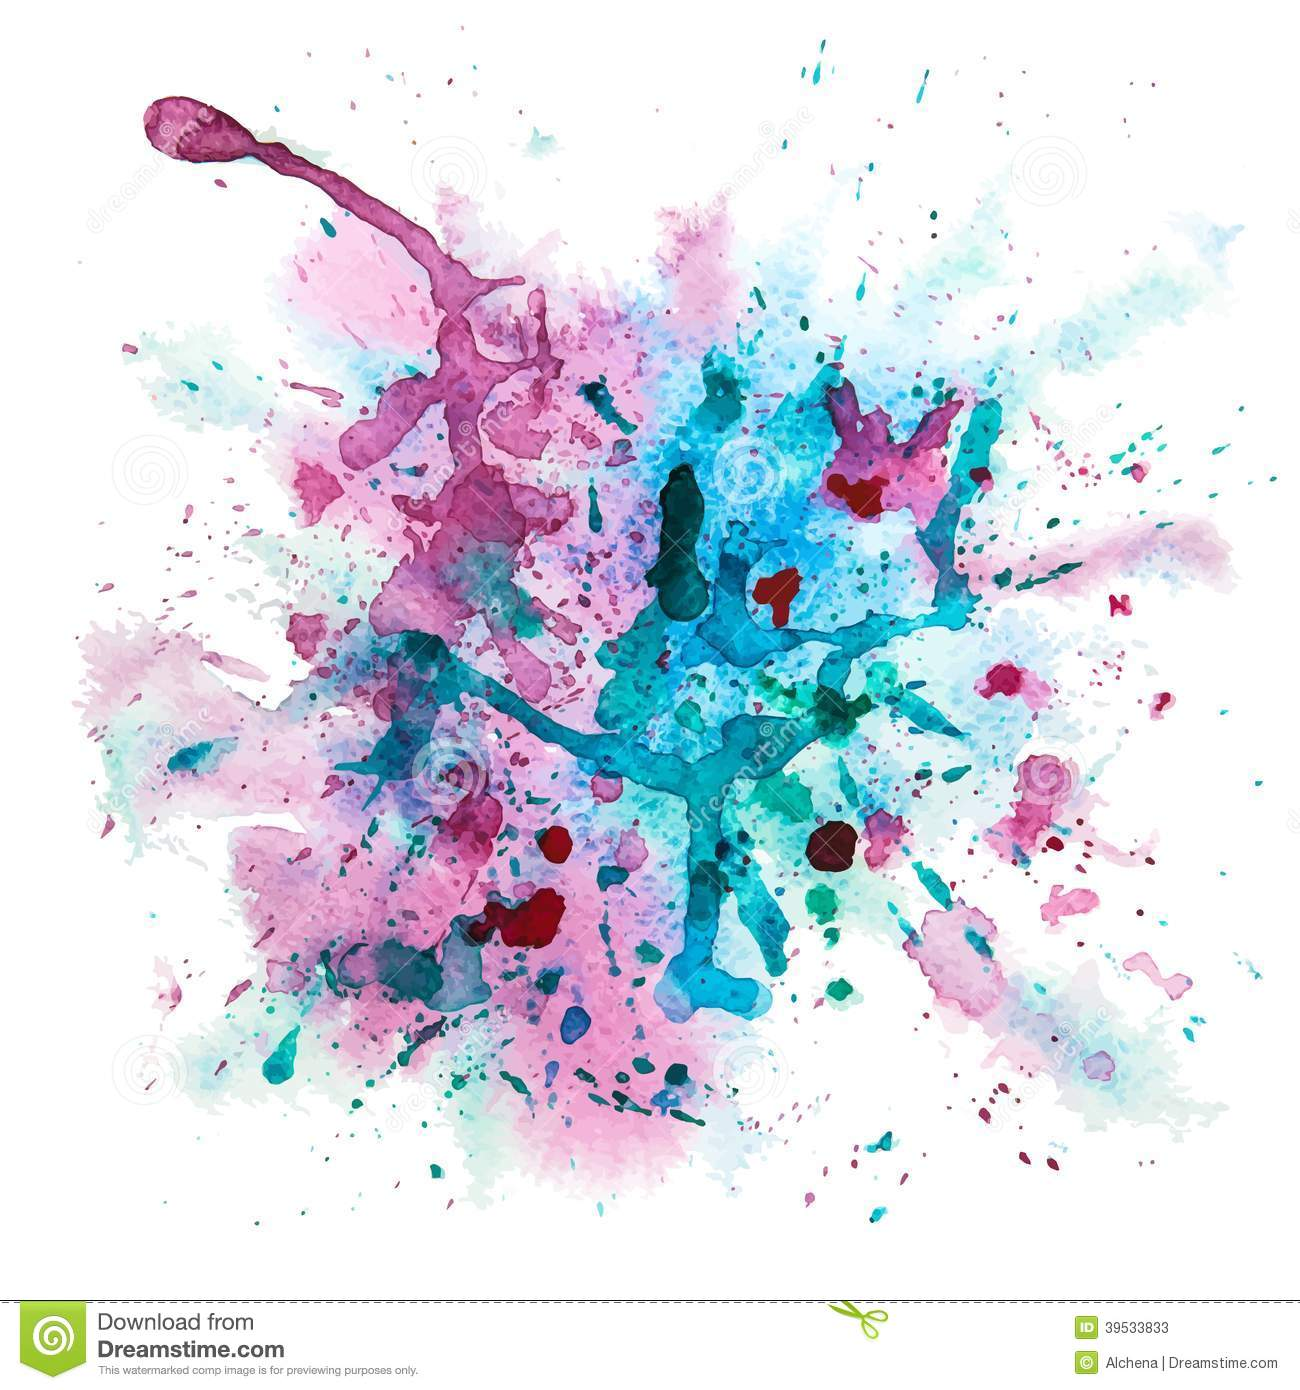 8 Watercolor Splash Vector Images